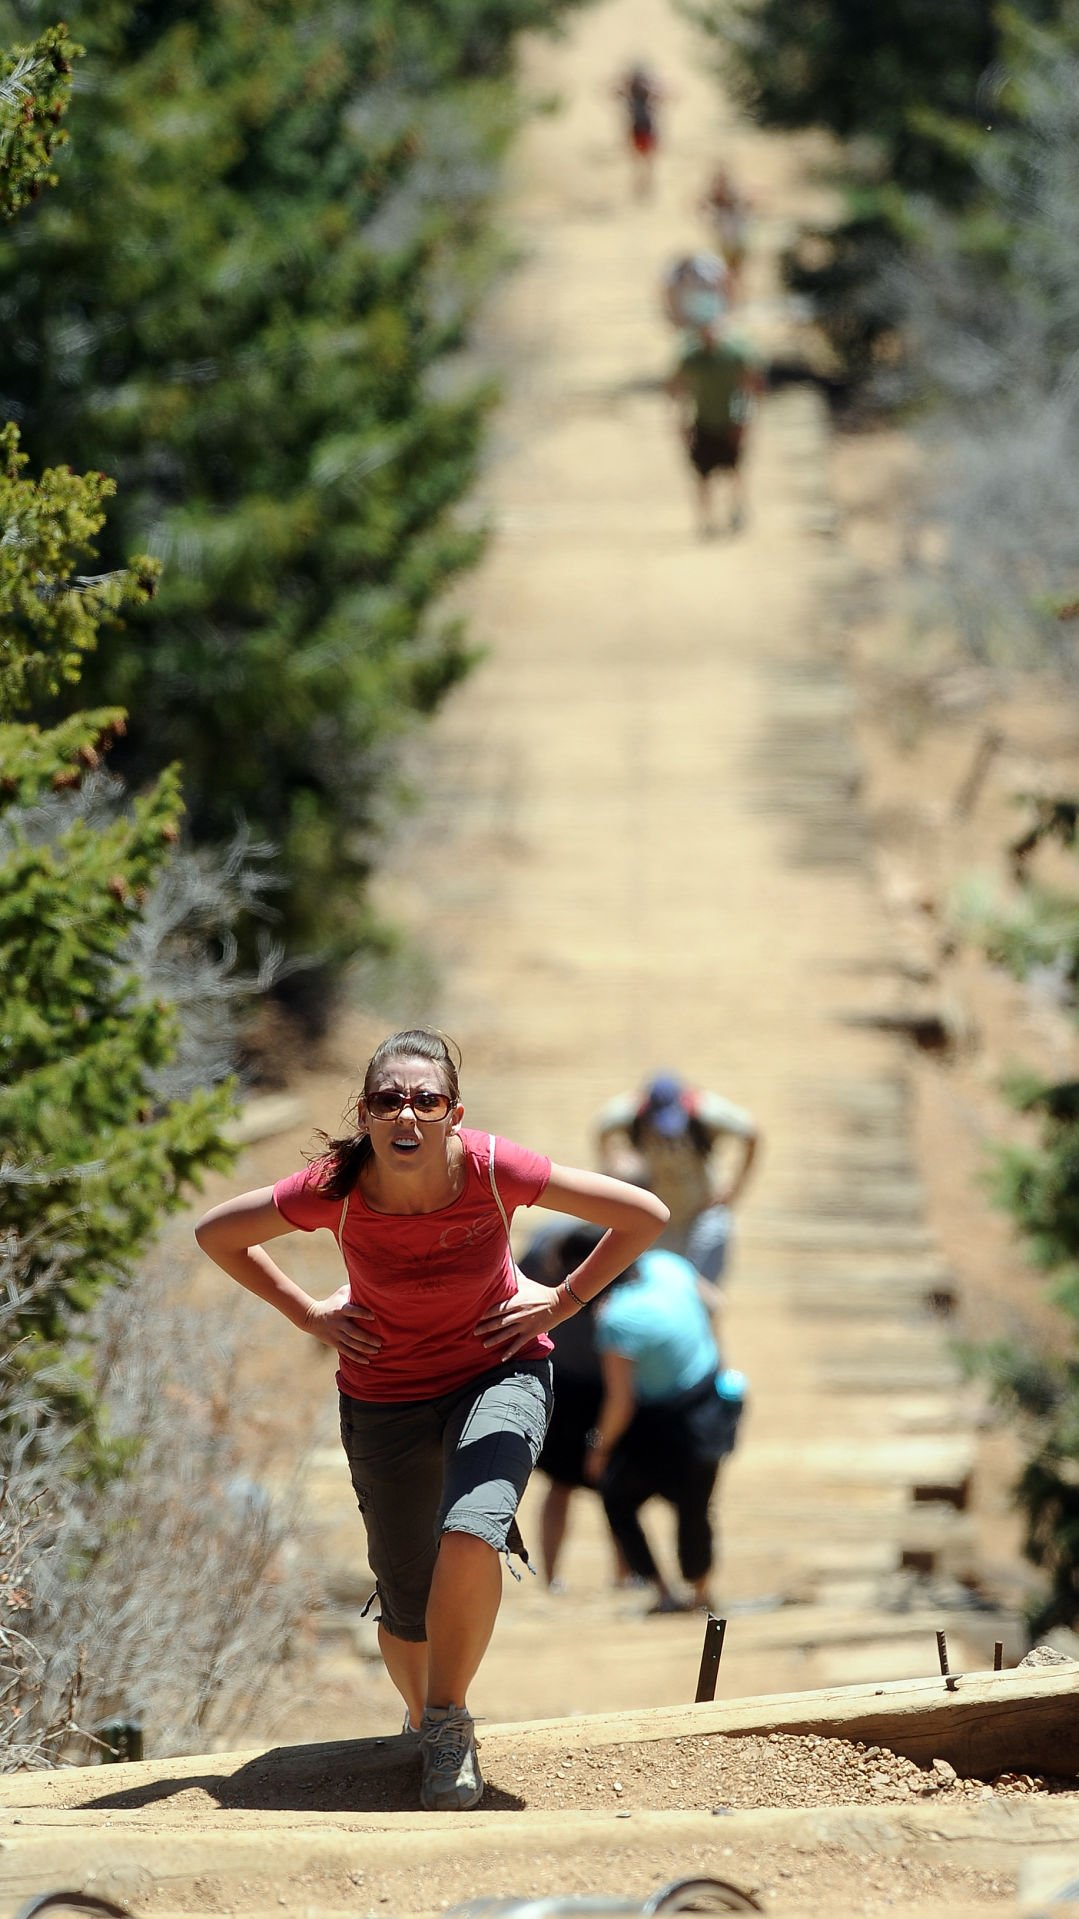 Michelle Carroll of Colorado Springs, Colo., climbs the 1.2-mile Incline in Manitou Springs, Thursday, May 6, 2010. She decided to make the 2,000-foot elevation gain before starting a new job on Friday. (The Gazette, Christian Murdock)